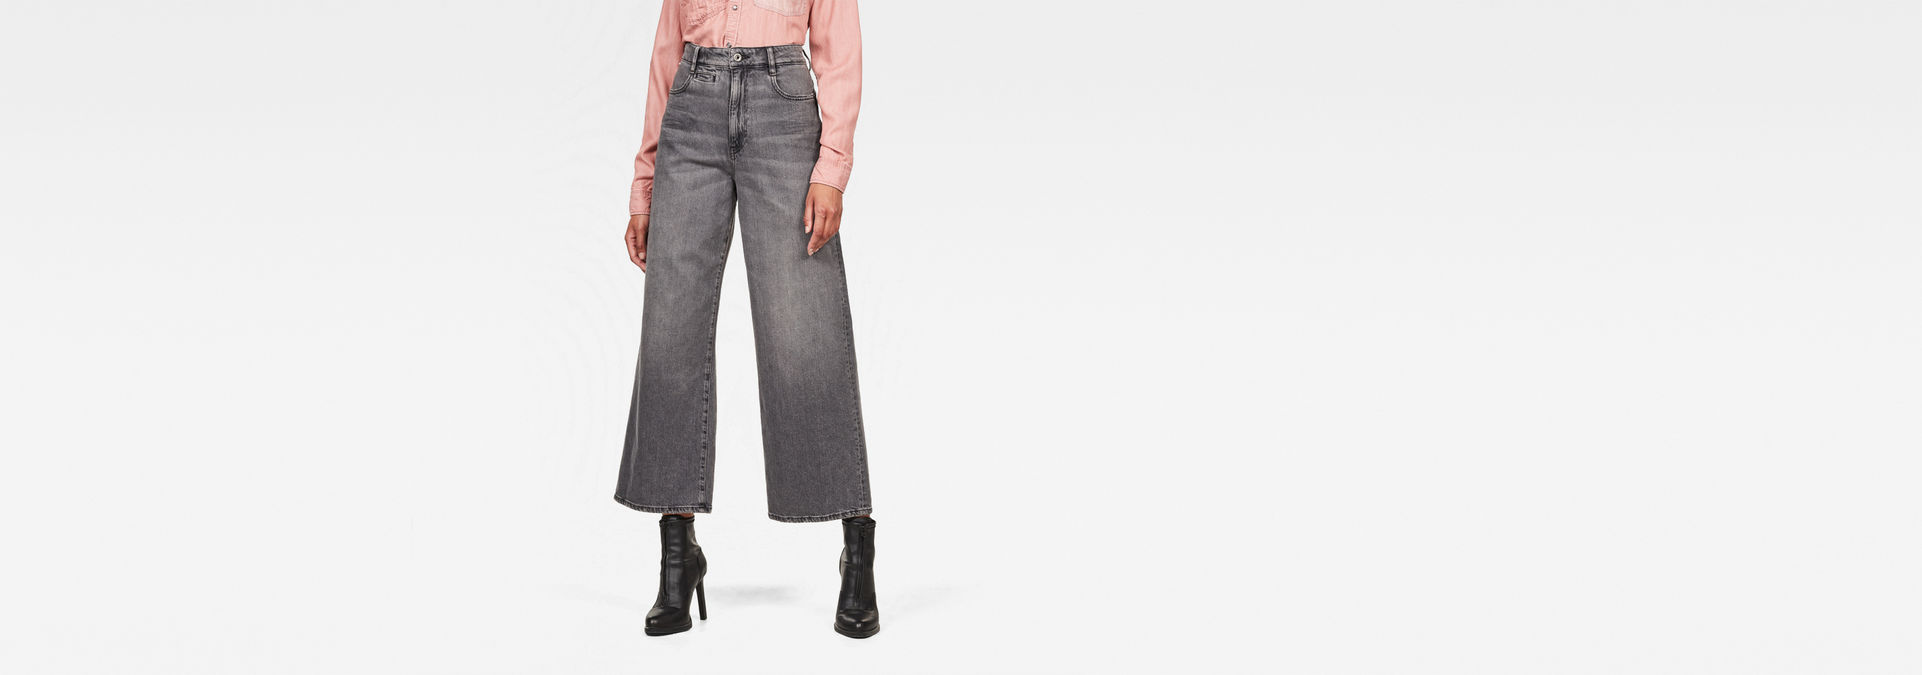 D Staq Ankle Jeans by G Star